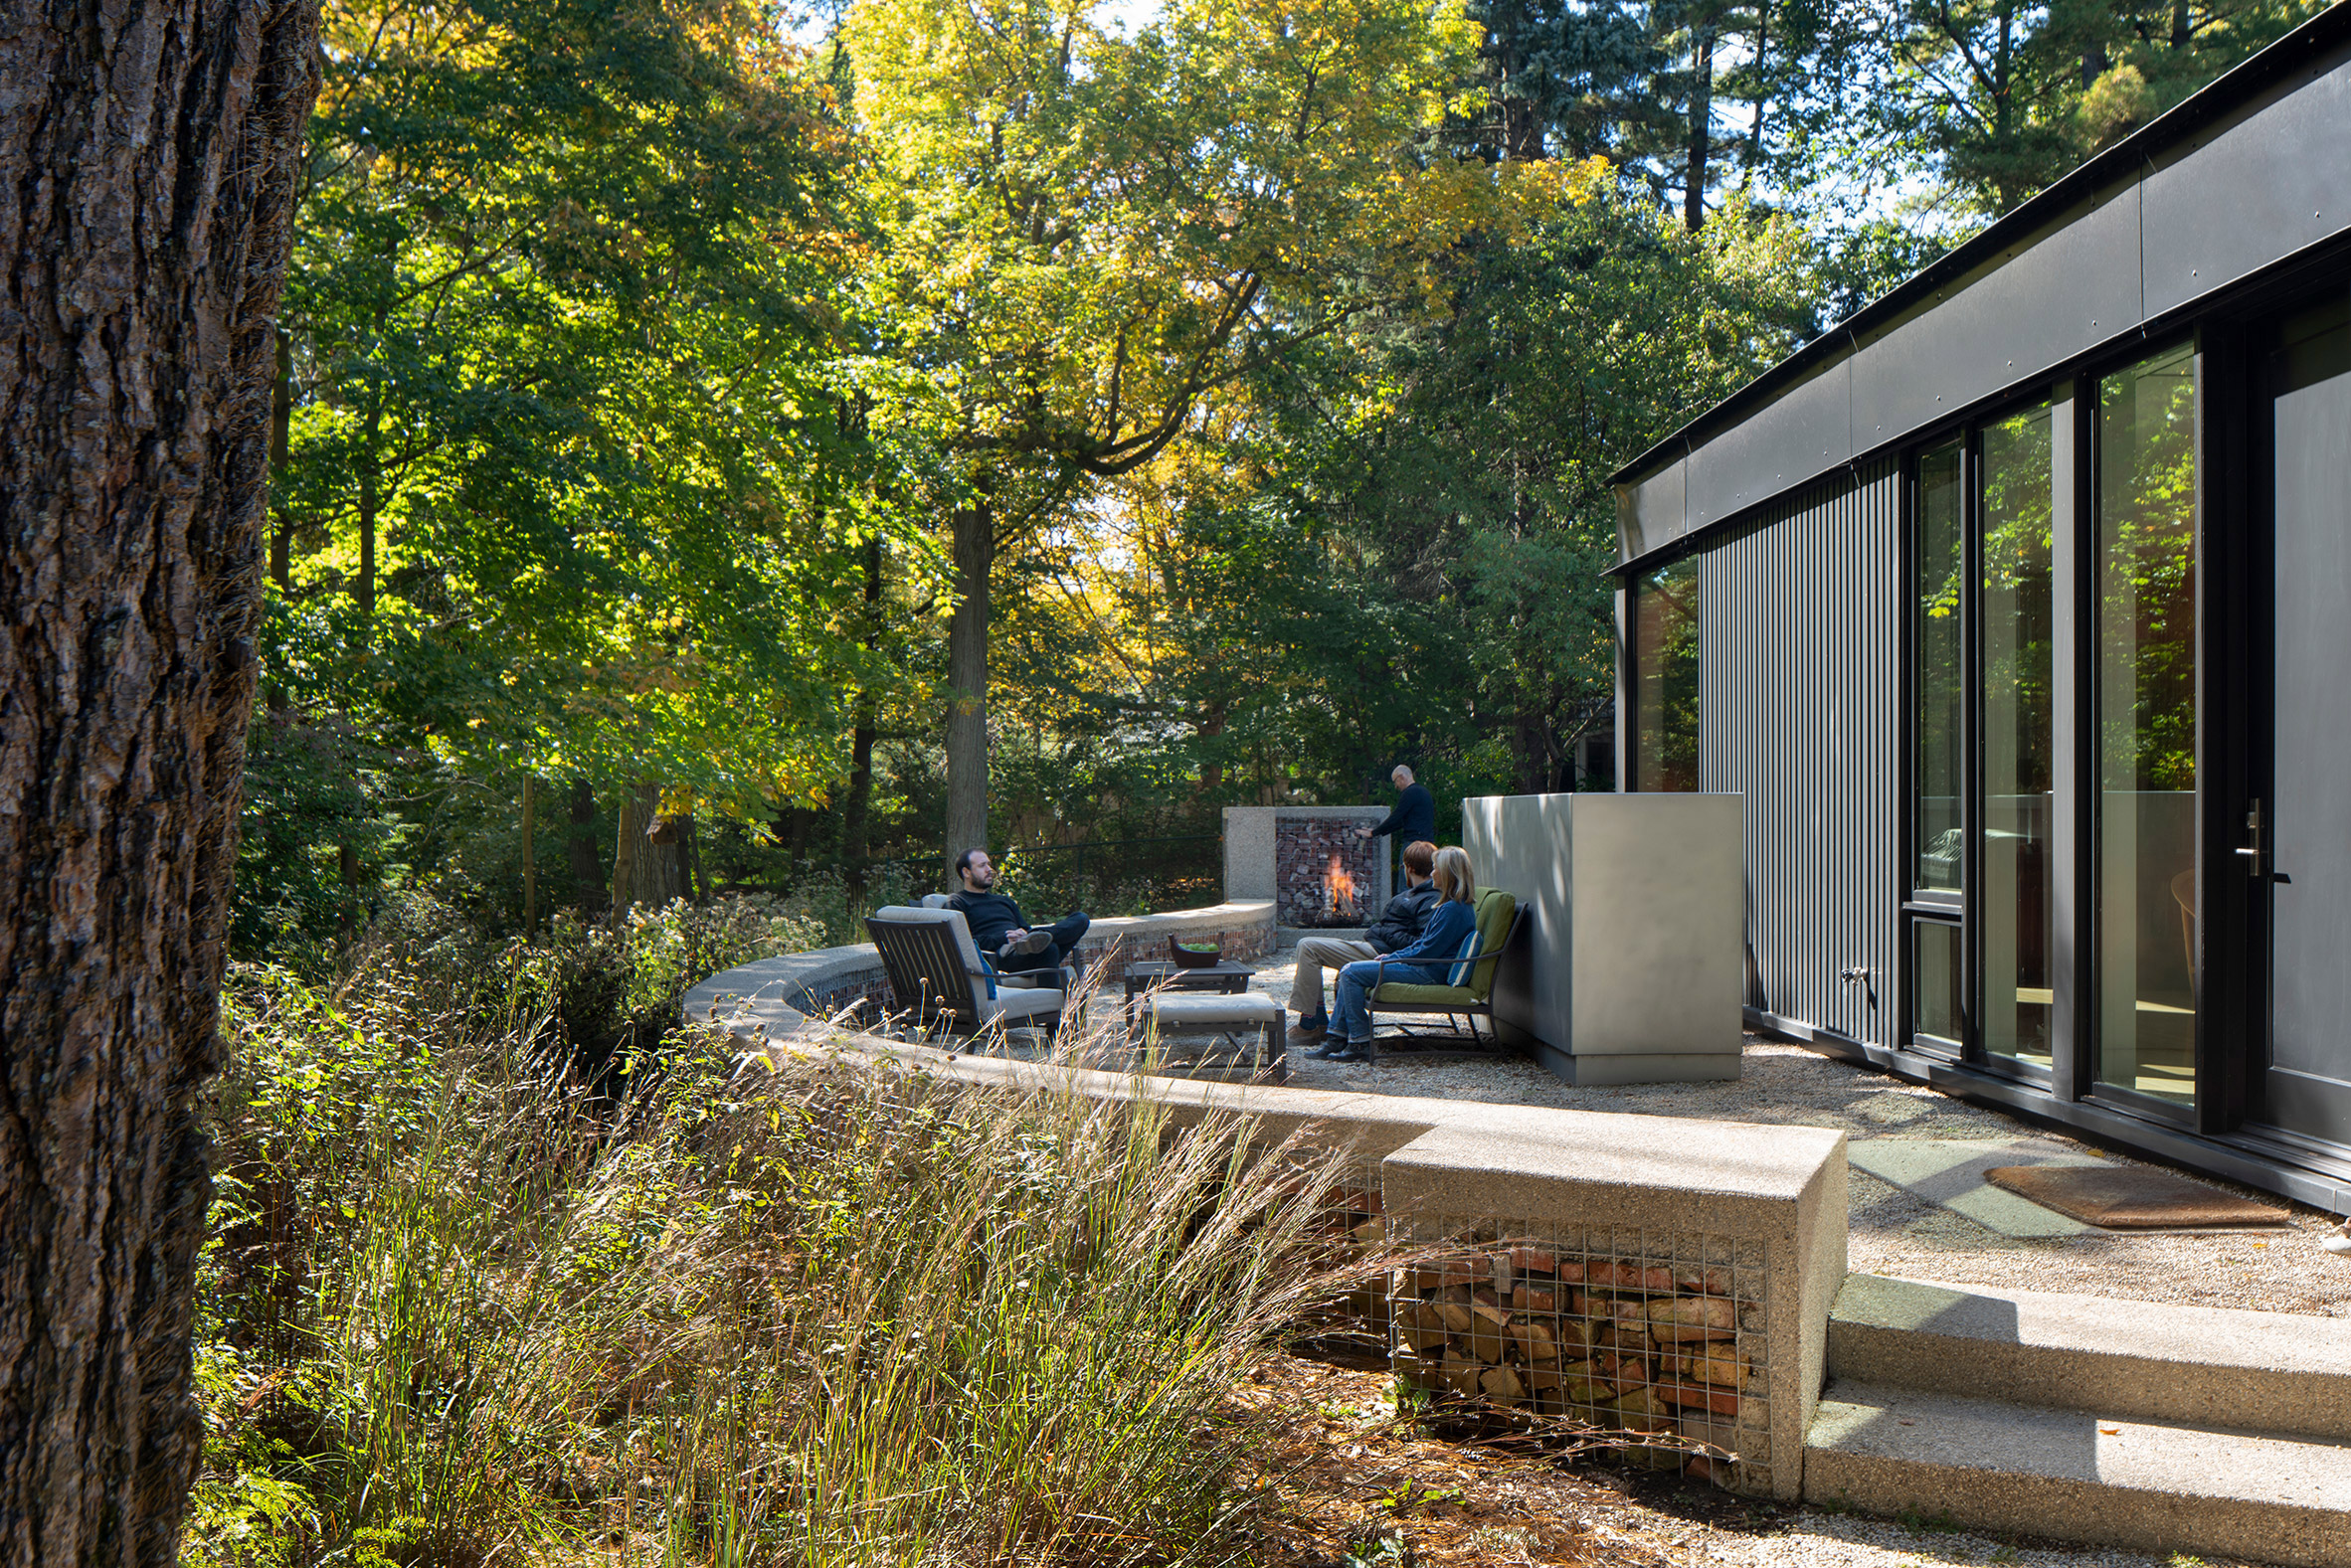 Outdoor seating area with fireplace